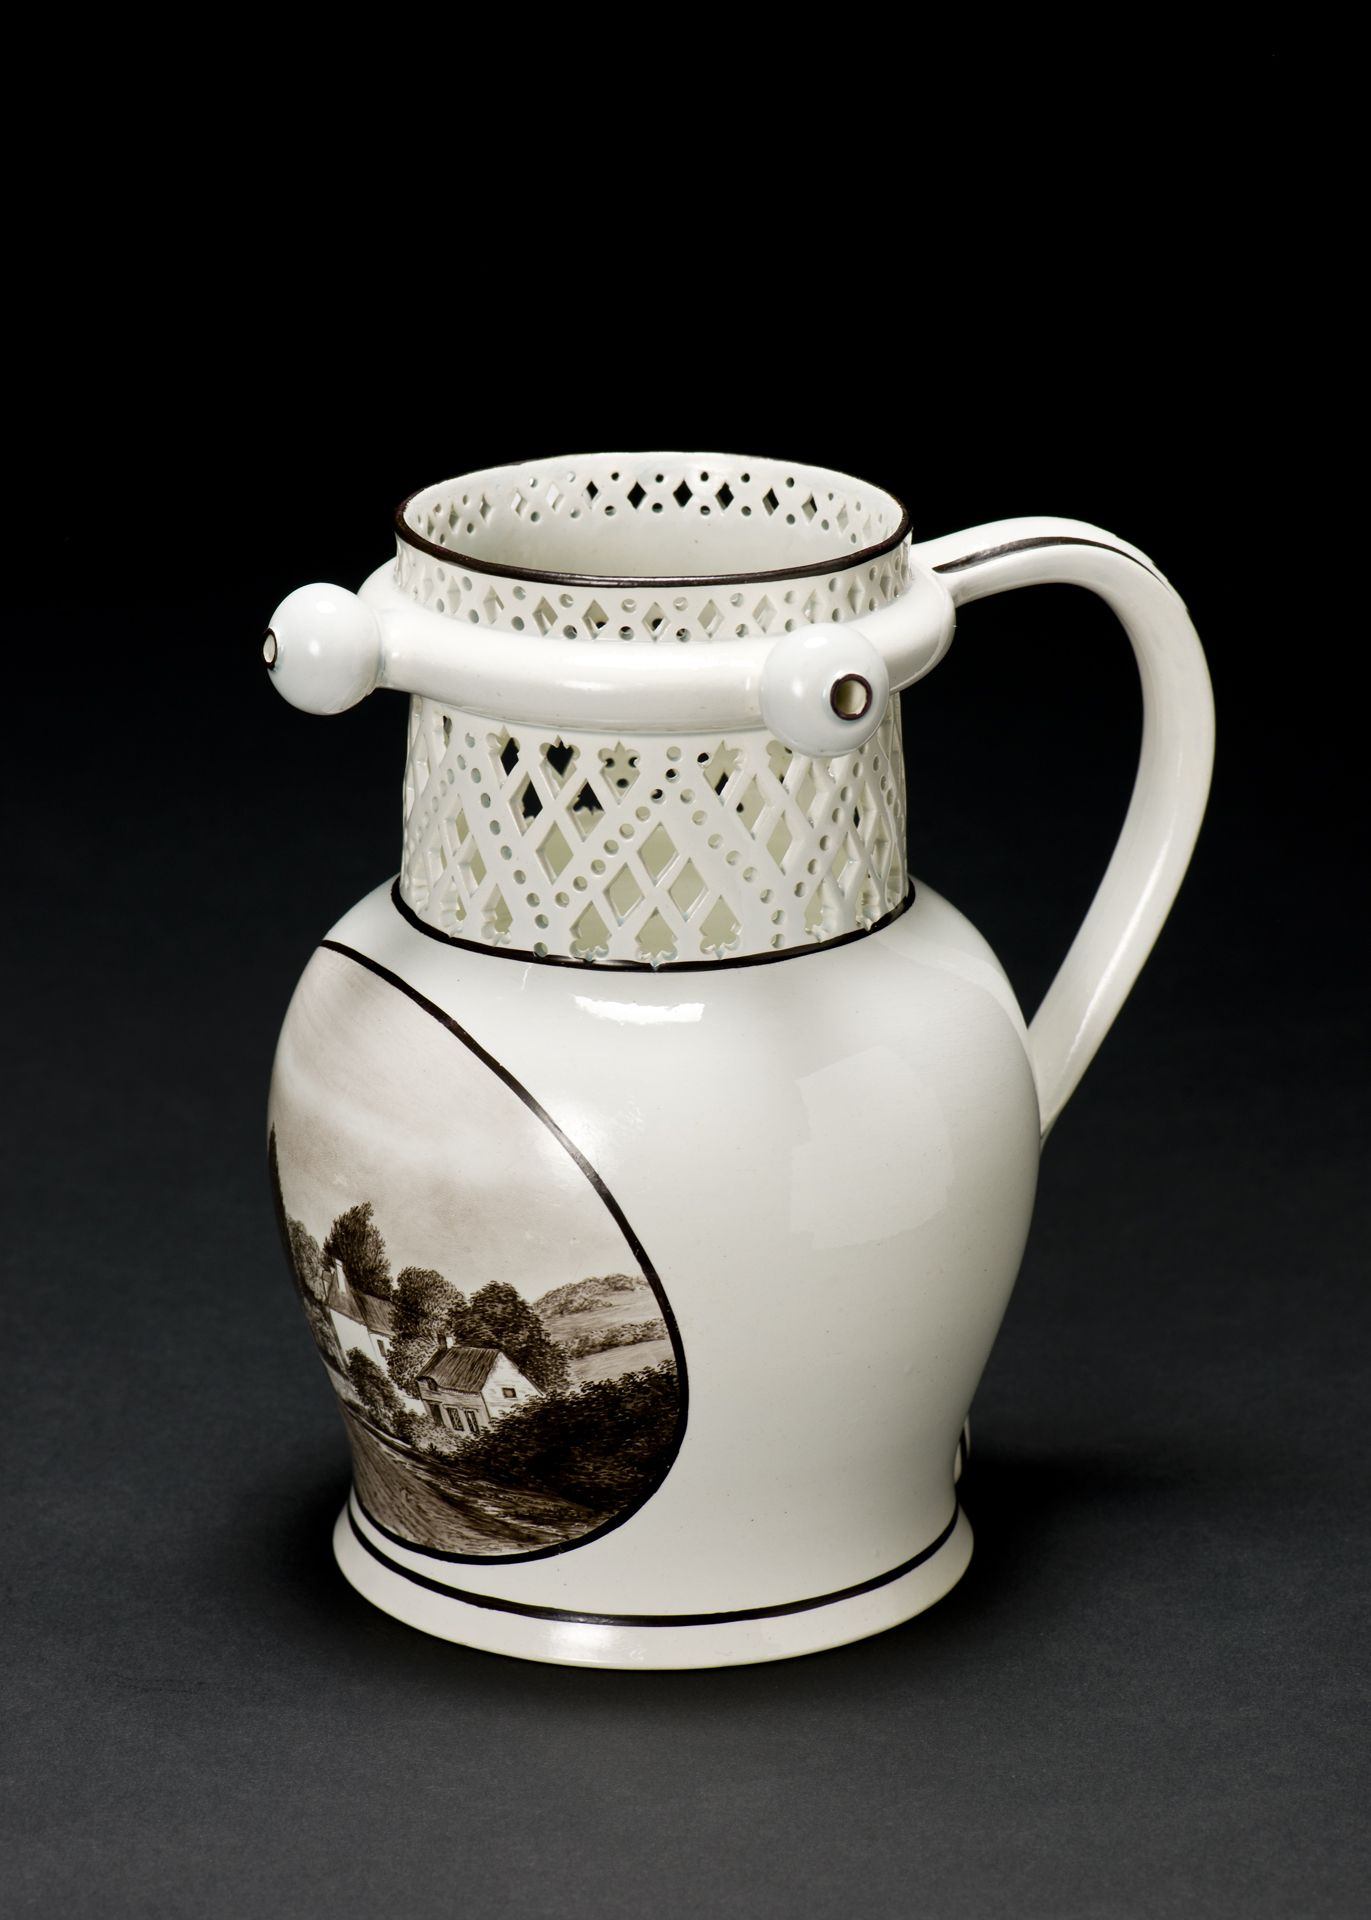 Jug with a cut out trellis-like design of circles and lozenges at the top, with a ring around neck from which protrude three bulbous spouts.